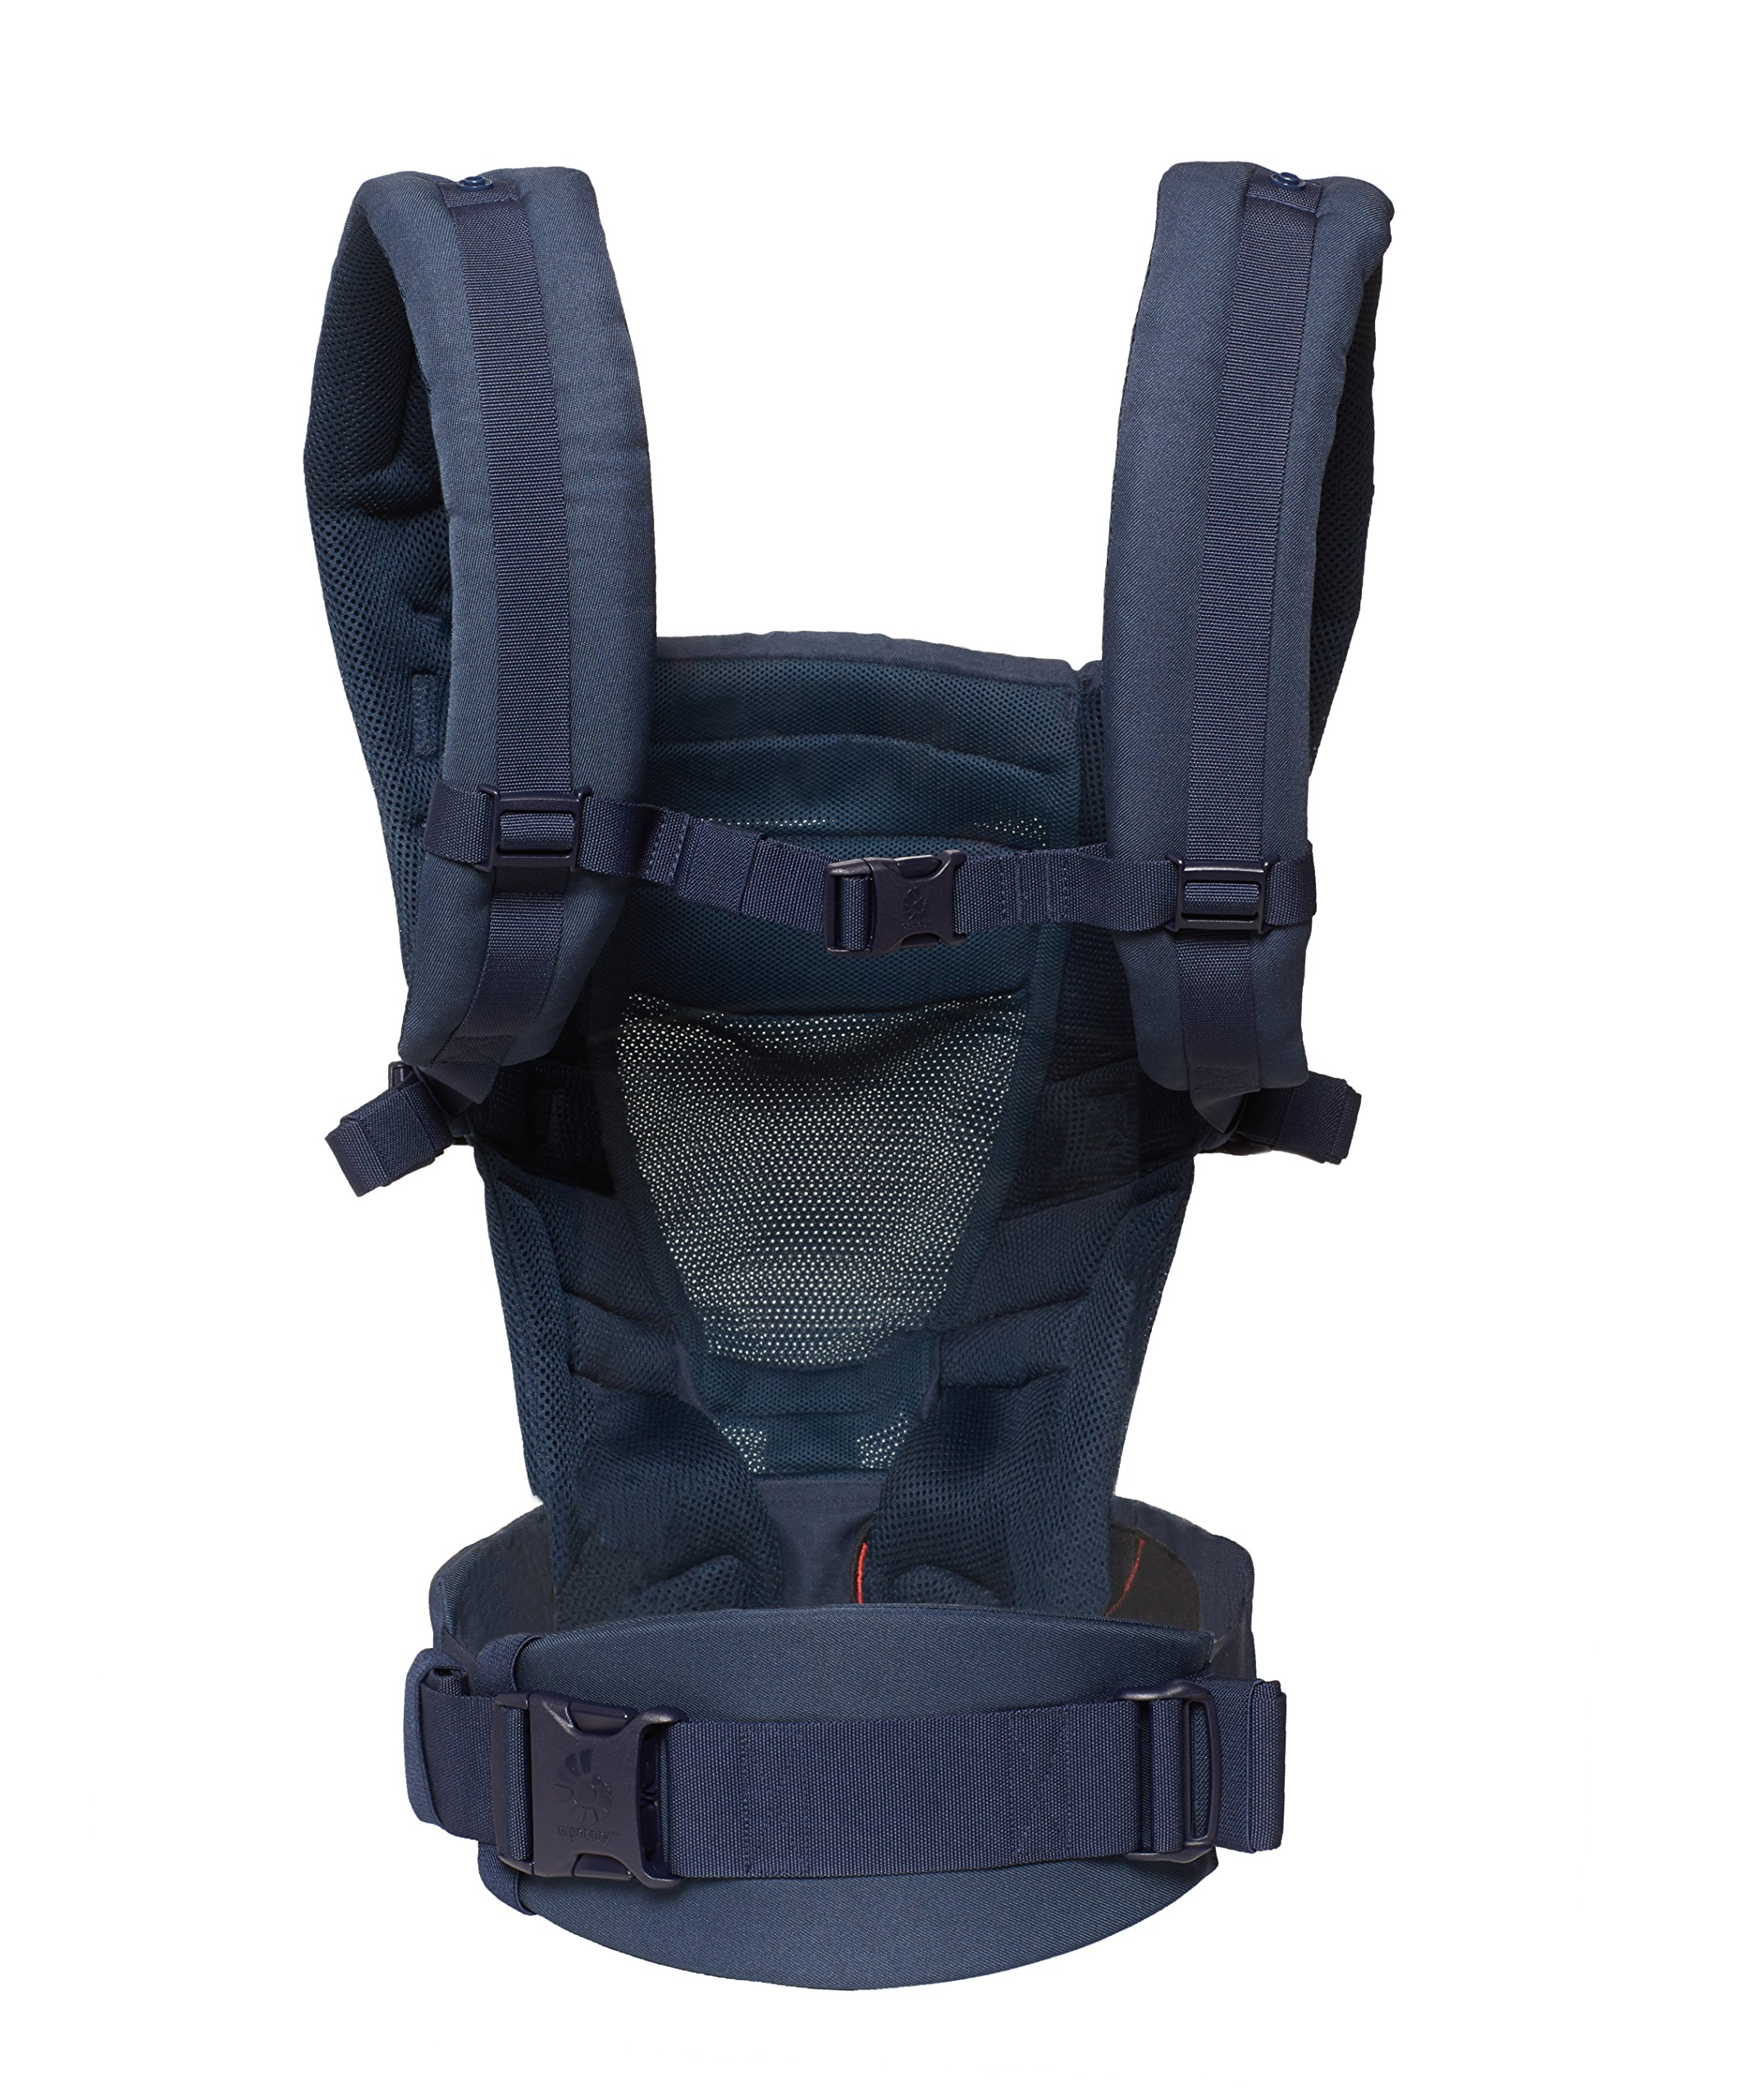 Ergobaby Baby Carrier for Newborn to Toddler up to 20kg, Adapt 3-Position Cool Air Mesh, Deep Blue Ergobaby Ergonomic bucket seat gradually adjusts to a growing baby from newborn to toddler (3.2 -20kg) No infant insert required 3 ergonomic carry positions: front-inward, hip and back 3